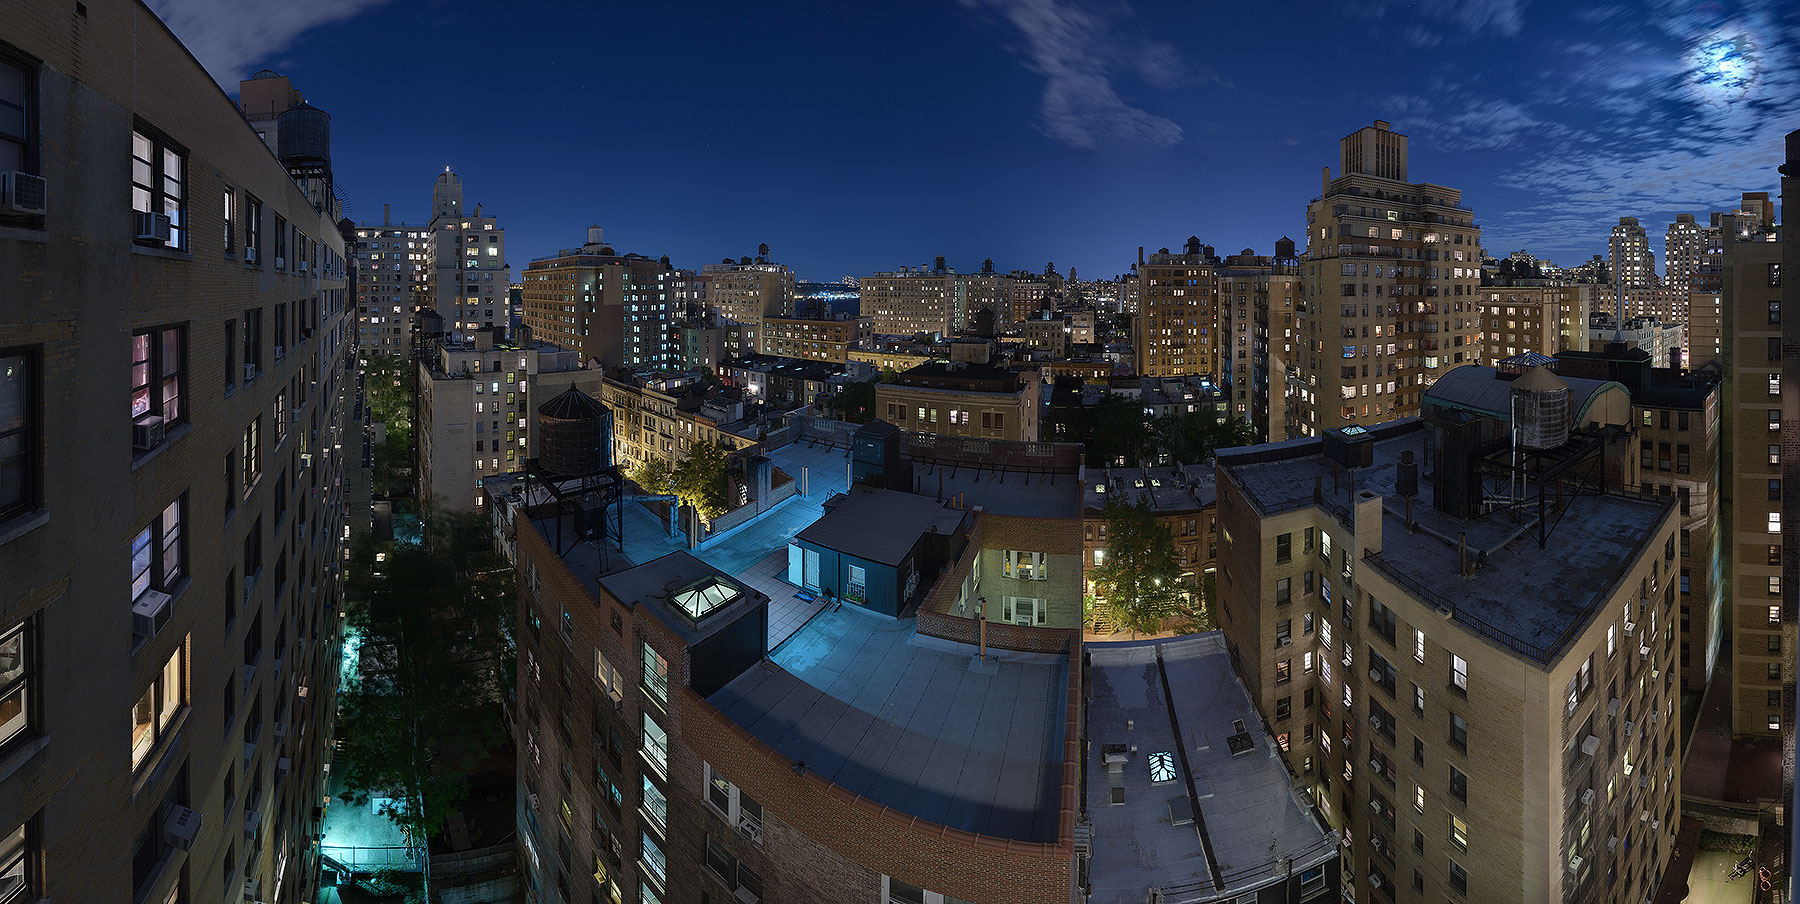 Upper West Side from internet